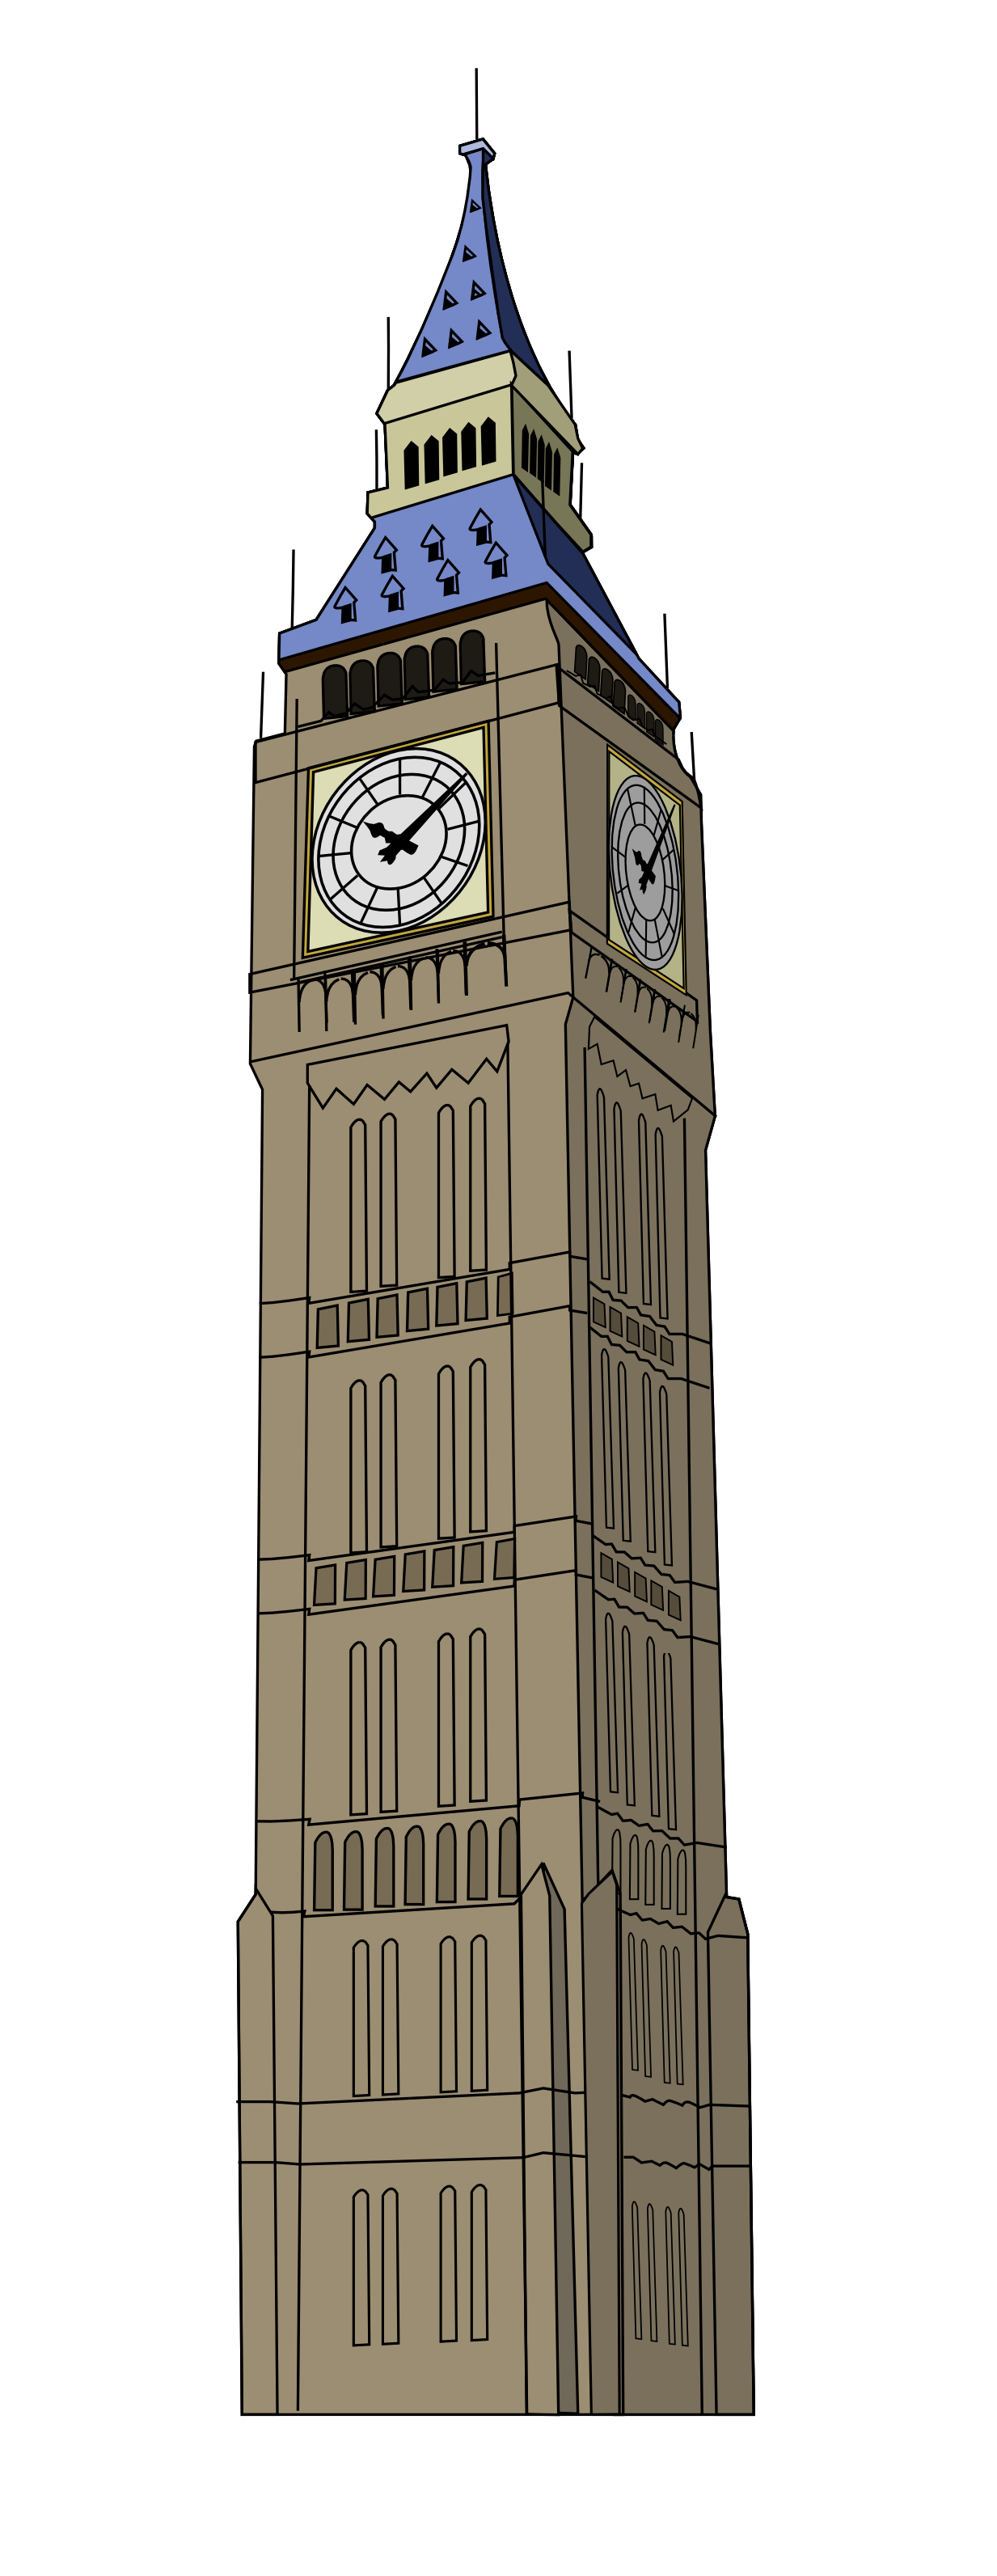 Ball state bell tower png. Big ben transparent image